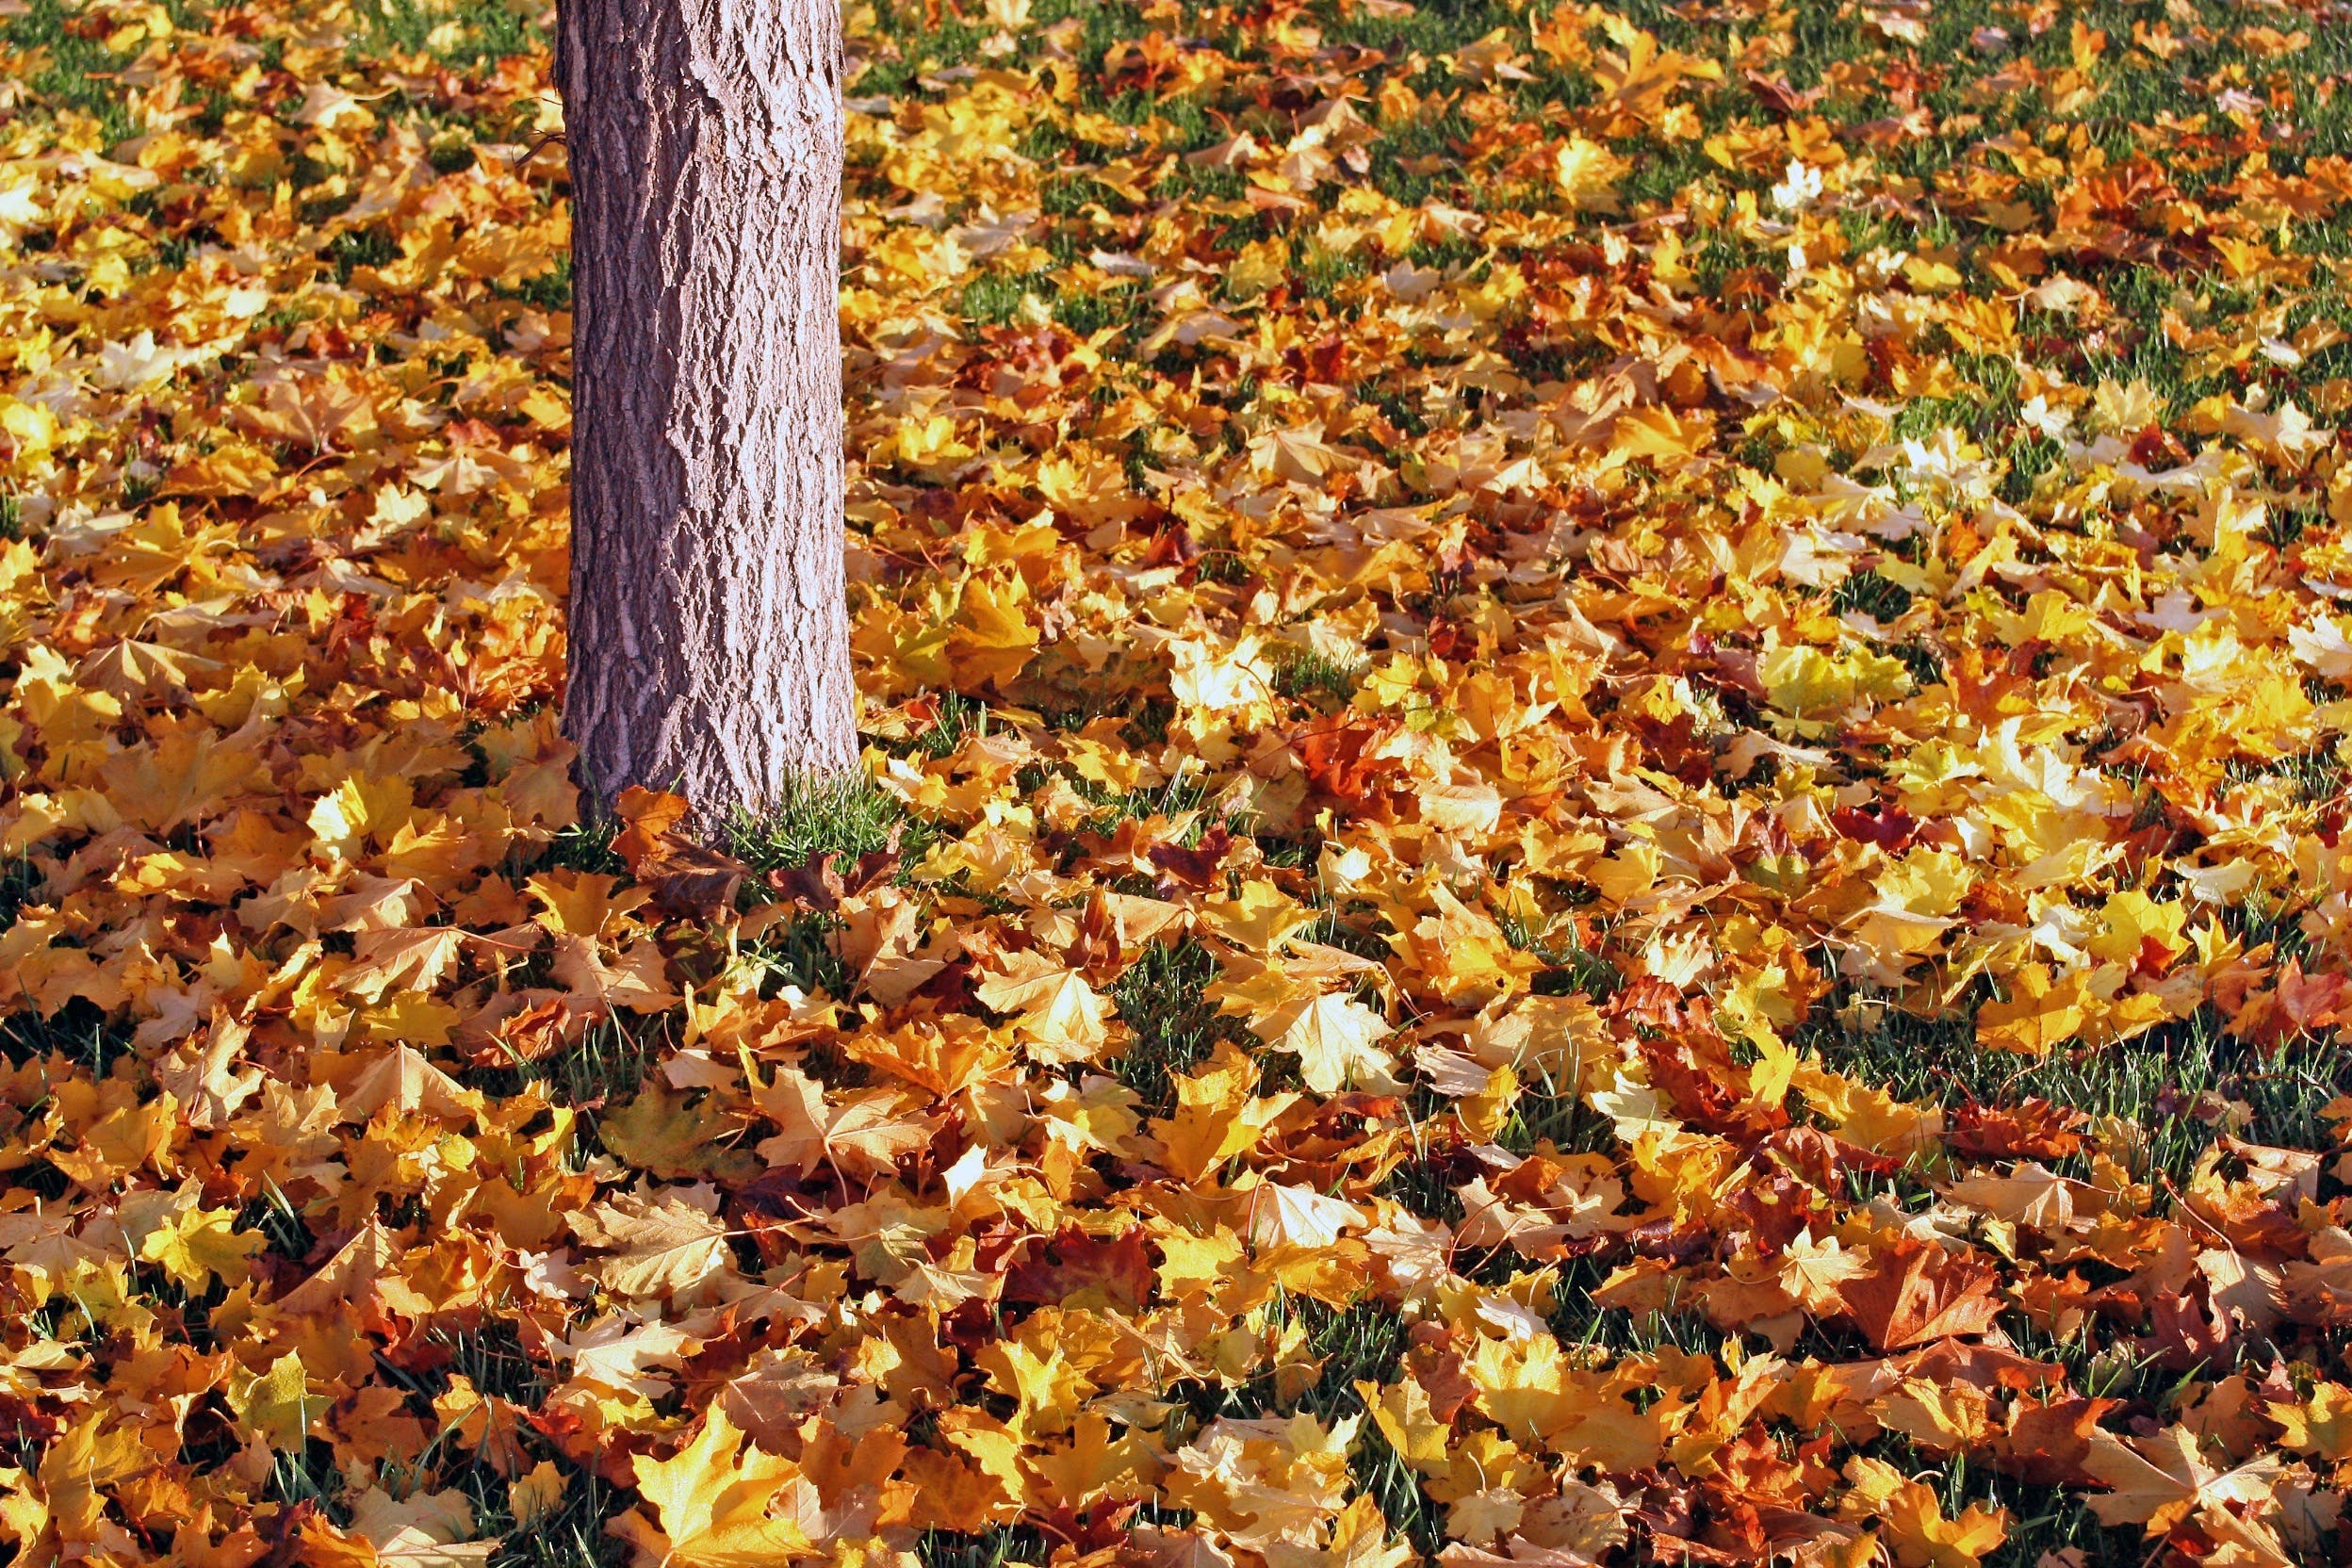 Colored Leaves Below a Grey Tree Trunk